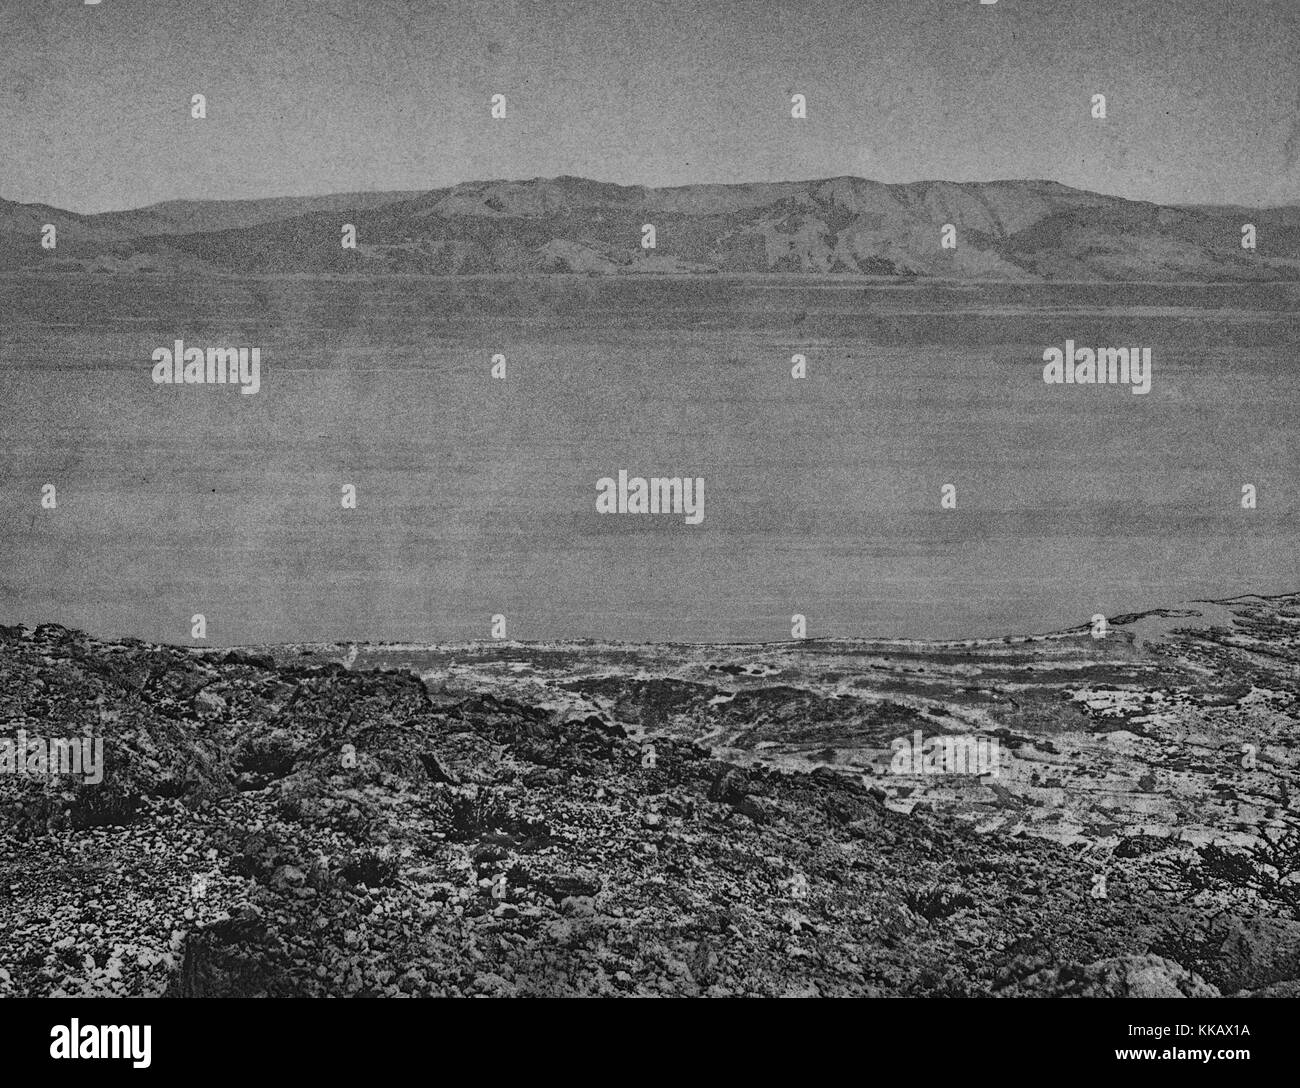 Dead Sea, shooting of Ain-Jidy (Engedi), 1874. From the New York Public Library. - Stock Image